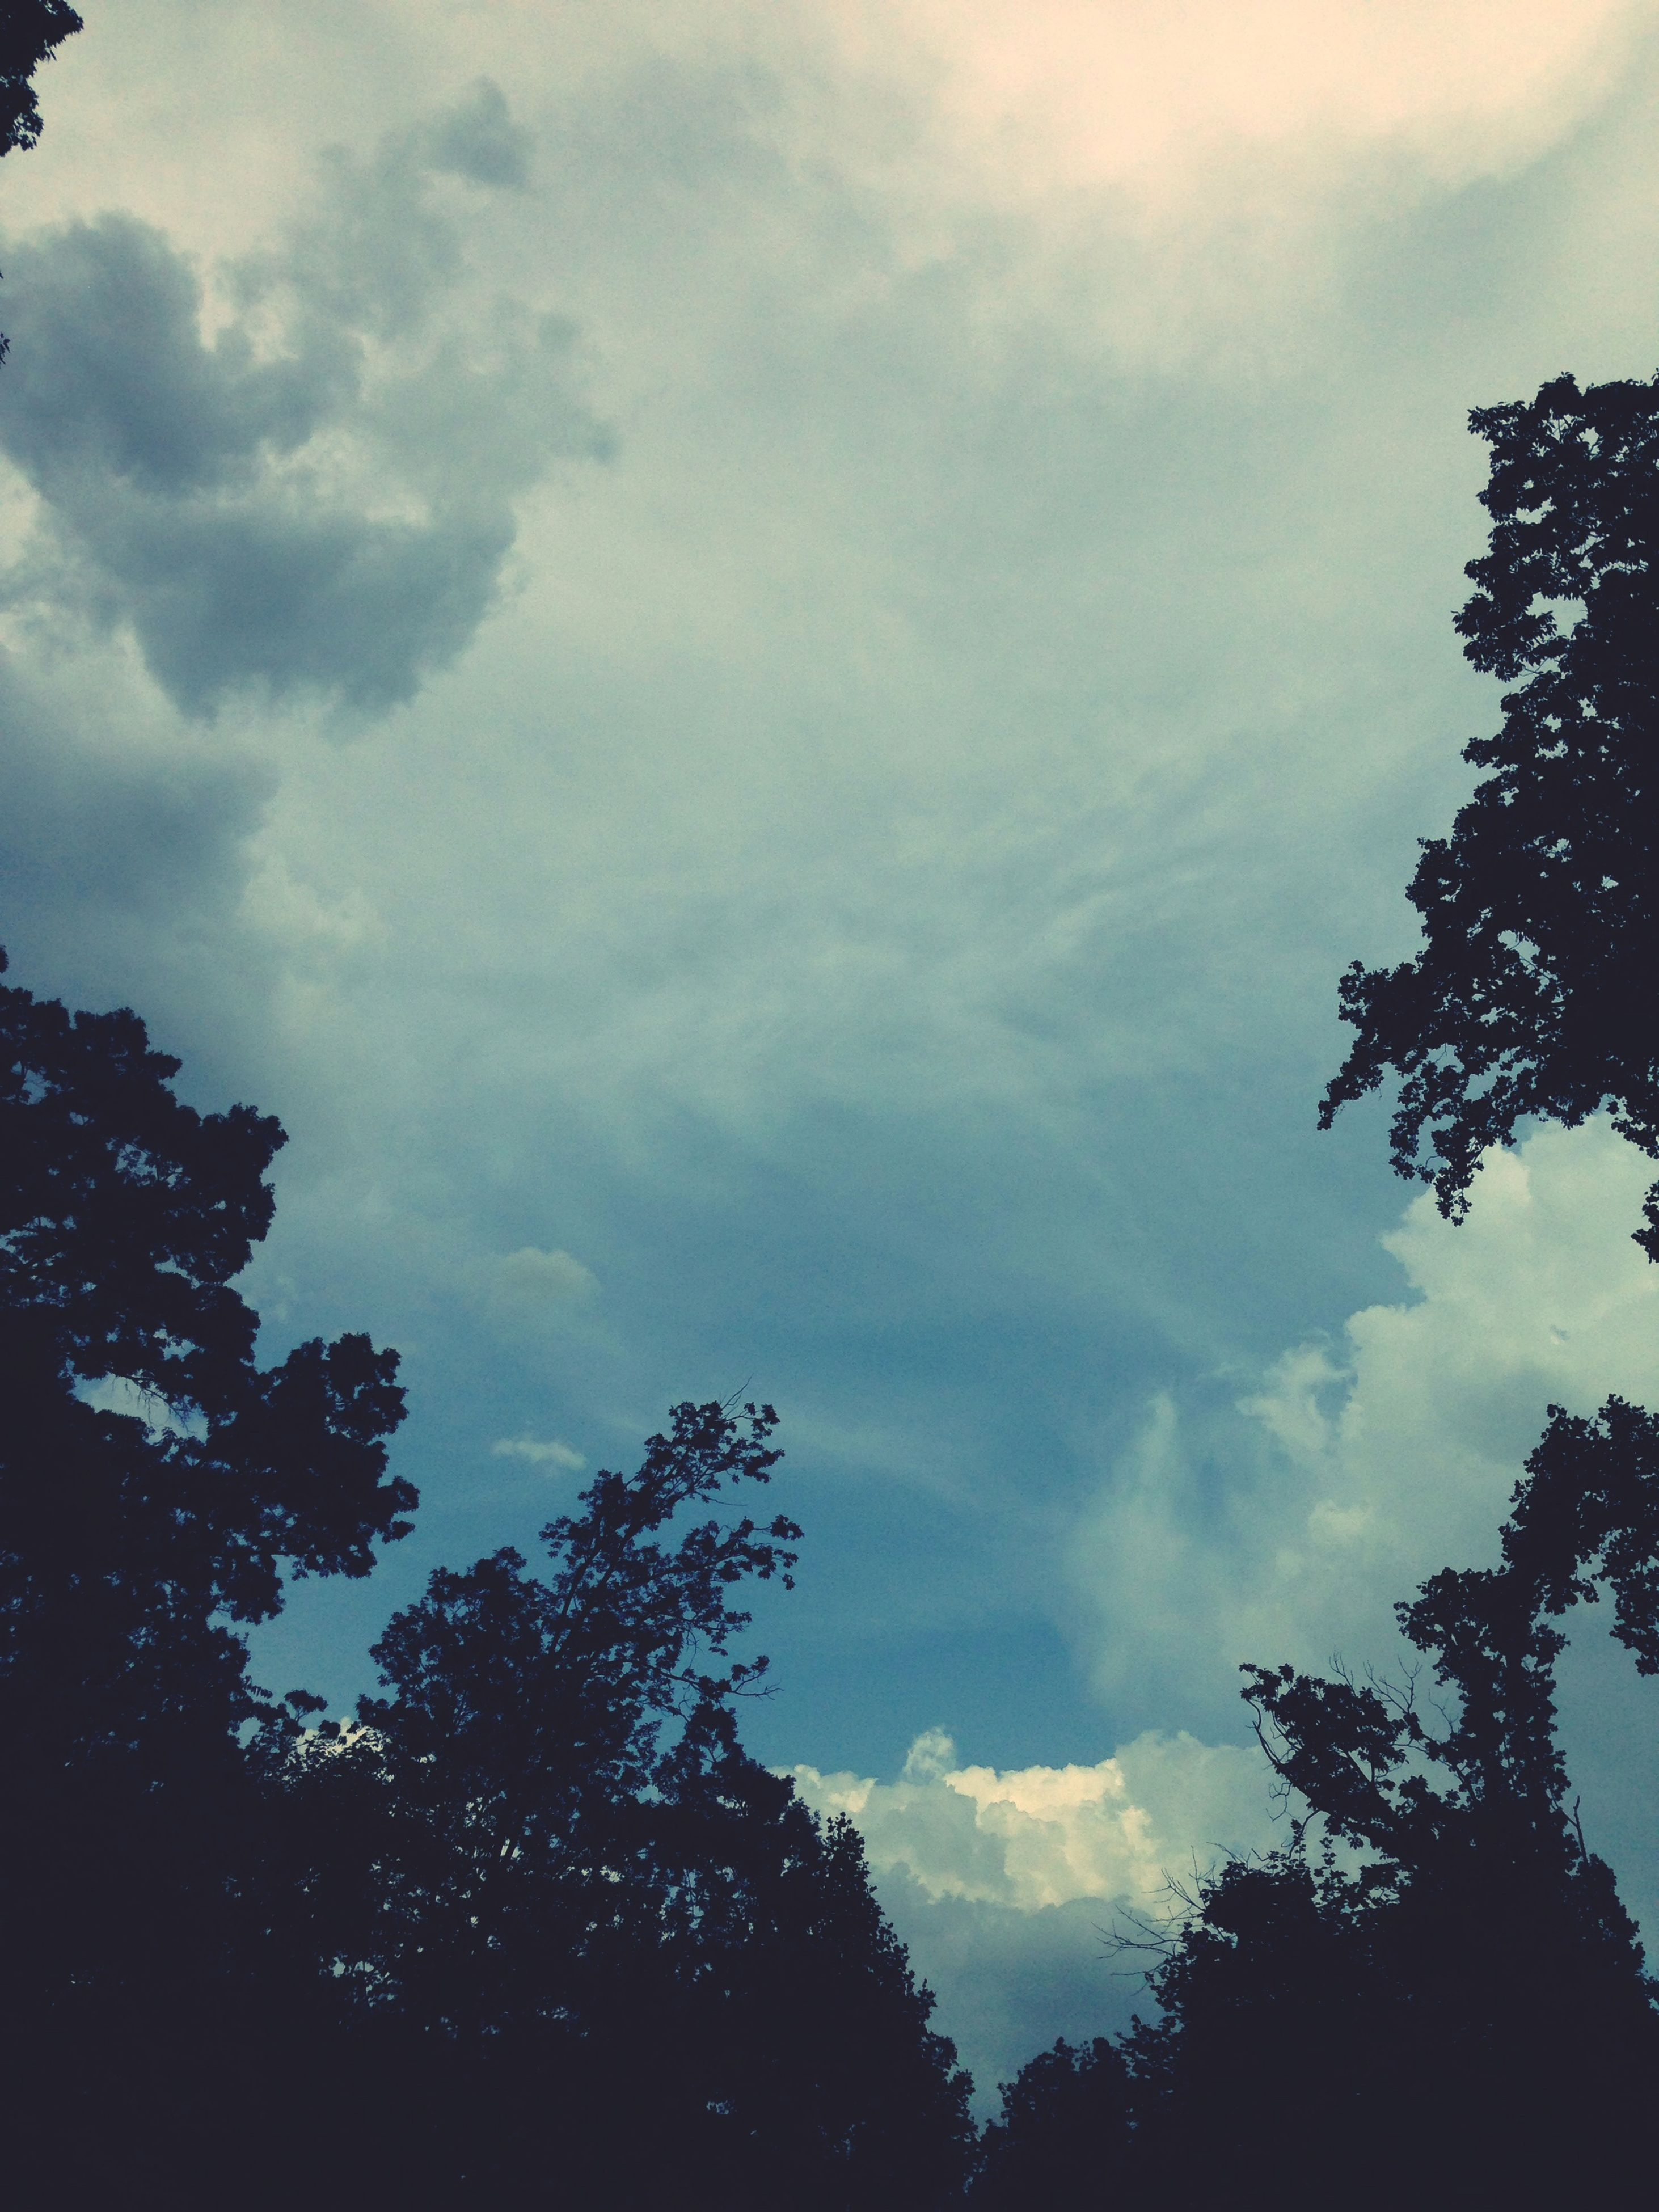 sky, low angle view, cloud - sky, tree, tranquility, cloudy, silhouette, beauty in nature, nature, tranquil scene, scenics, cloud, branch, outdoors, idyllic, no people, weather, dusk, growth, day